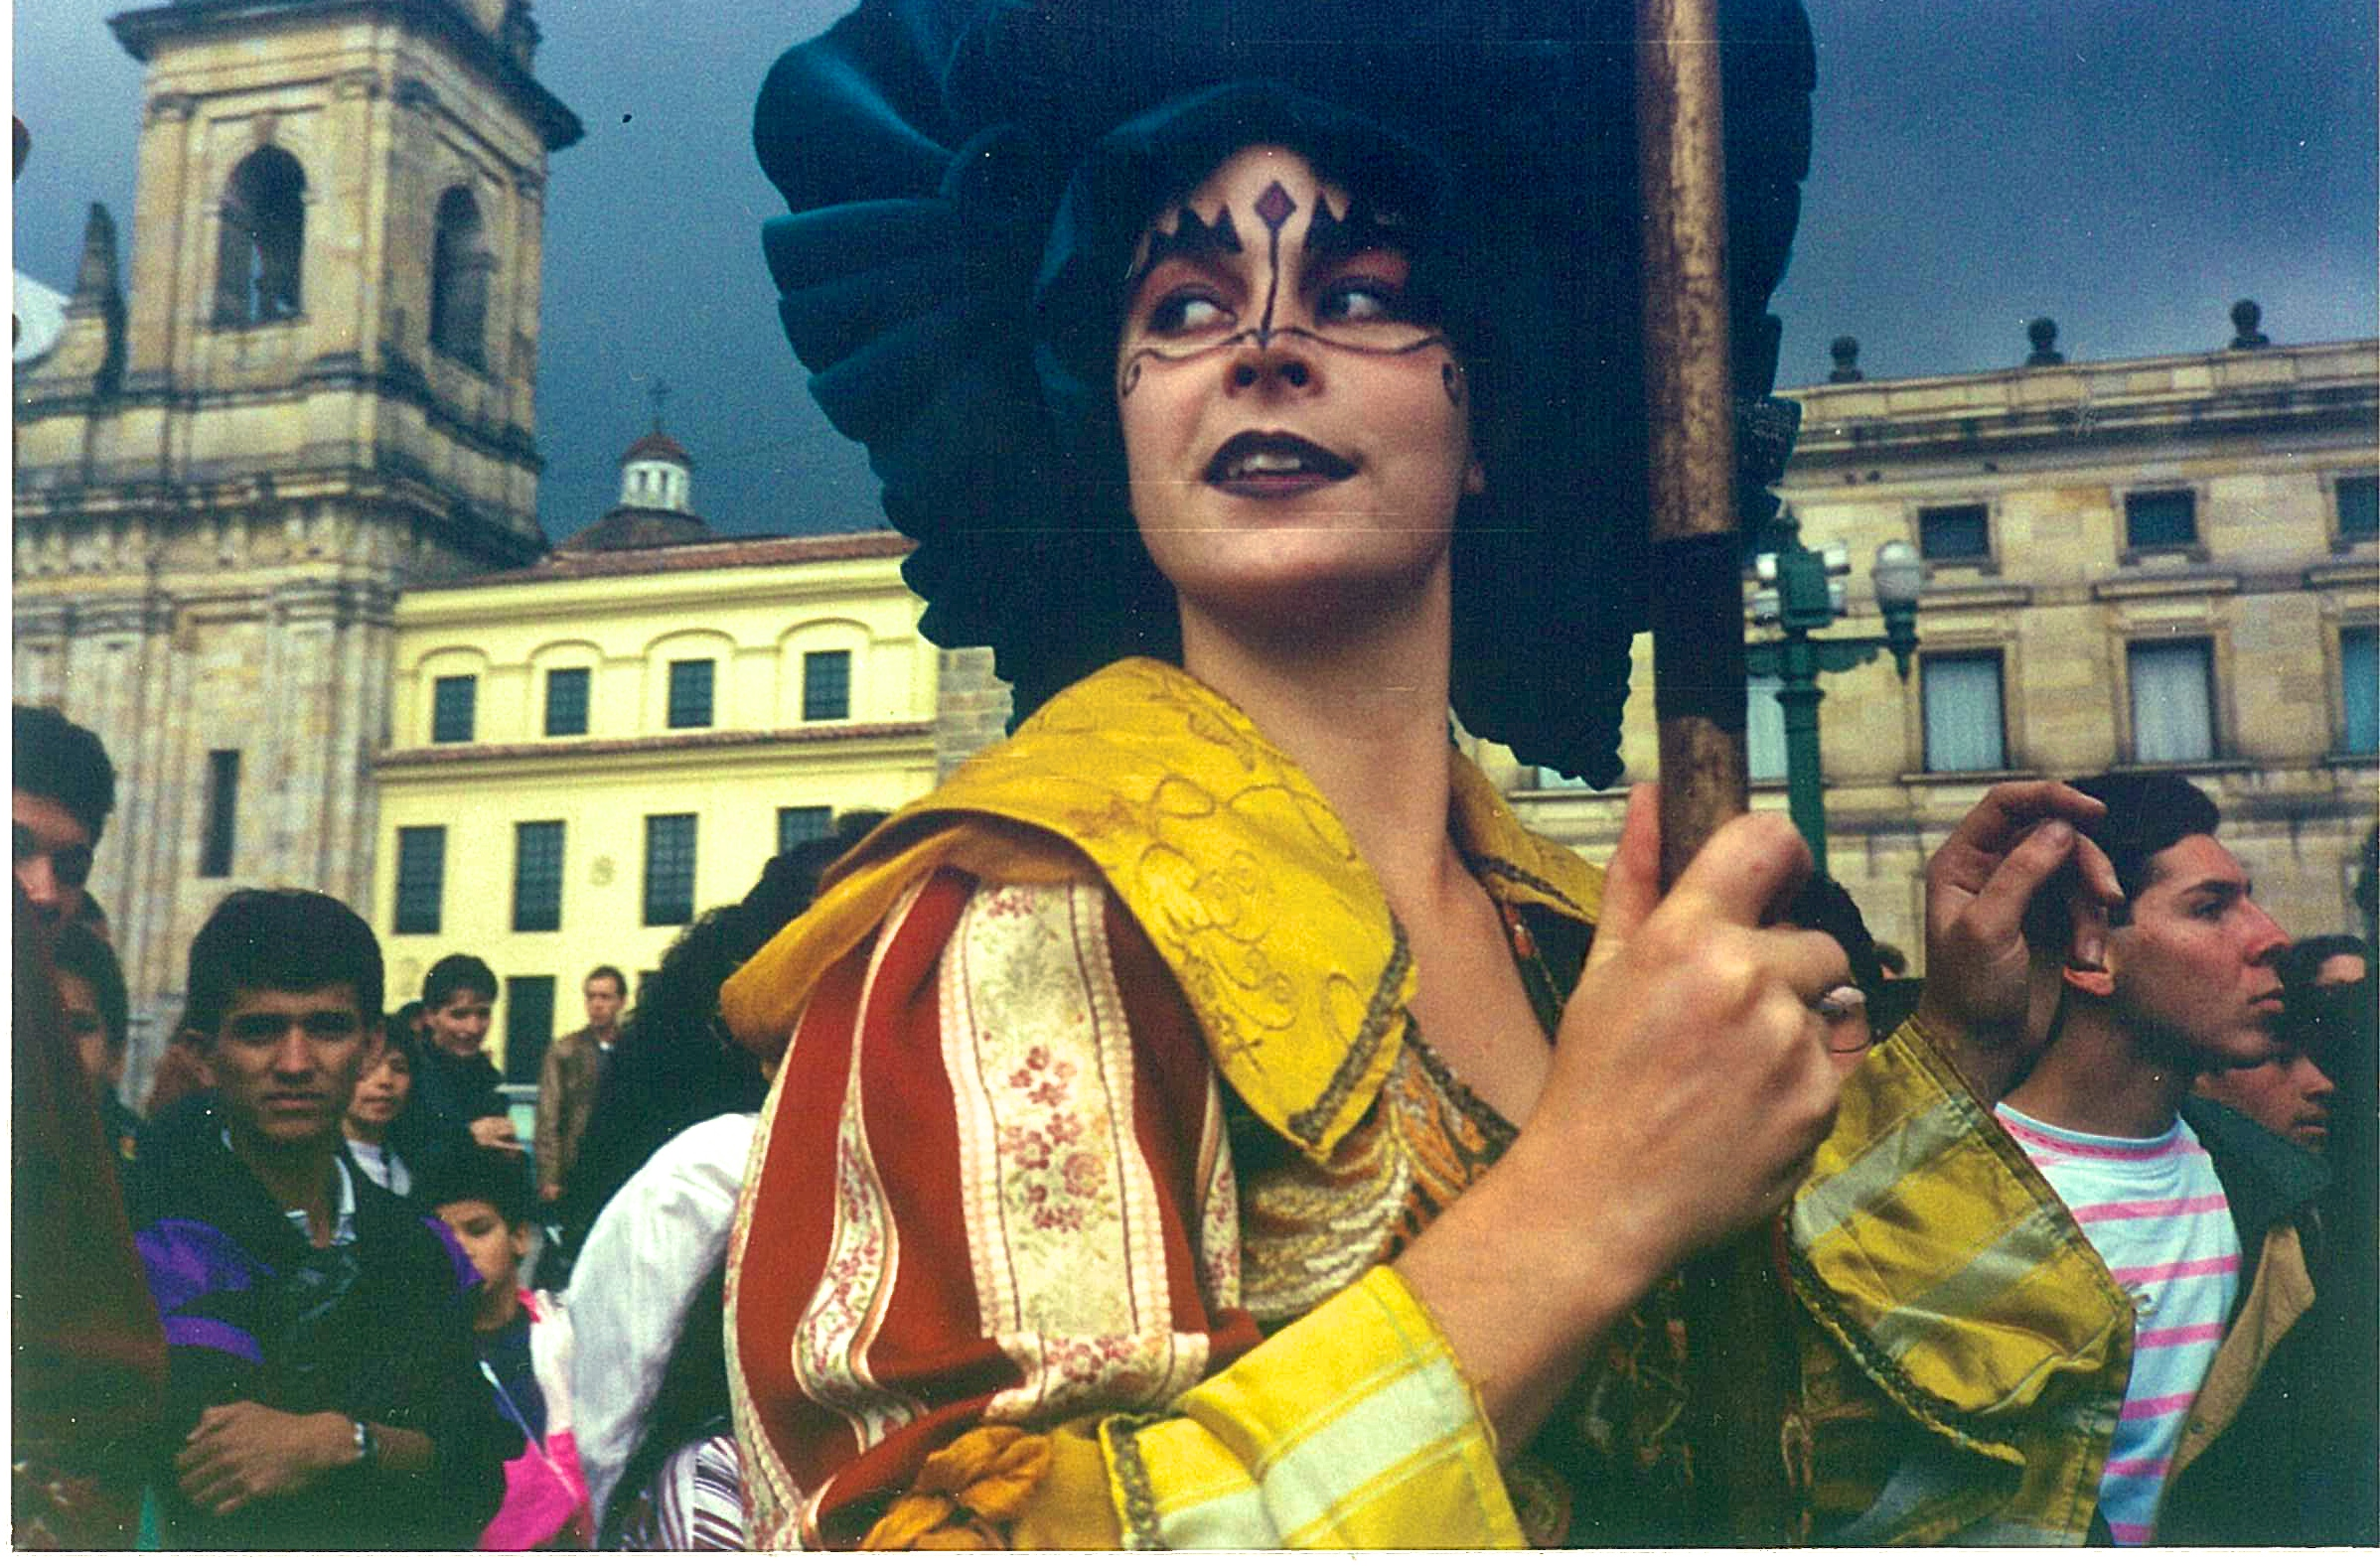 Street Theatre Company 'The Hunting Party' in Bogota, Colombia 1995